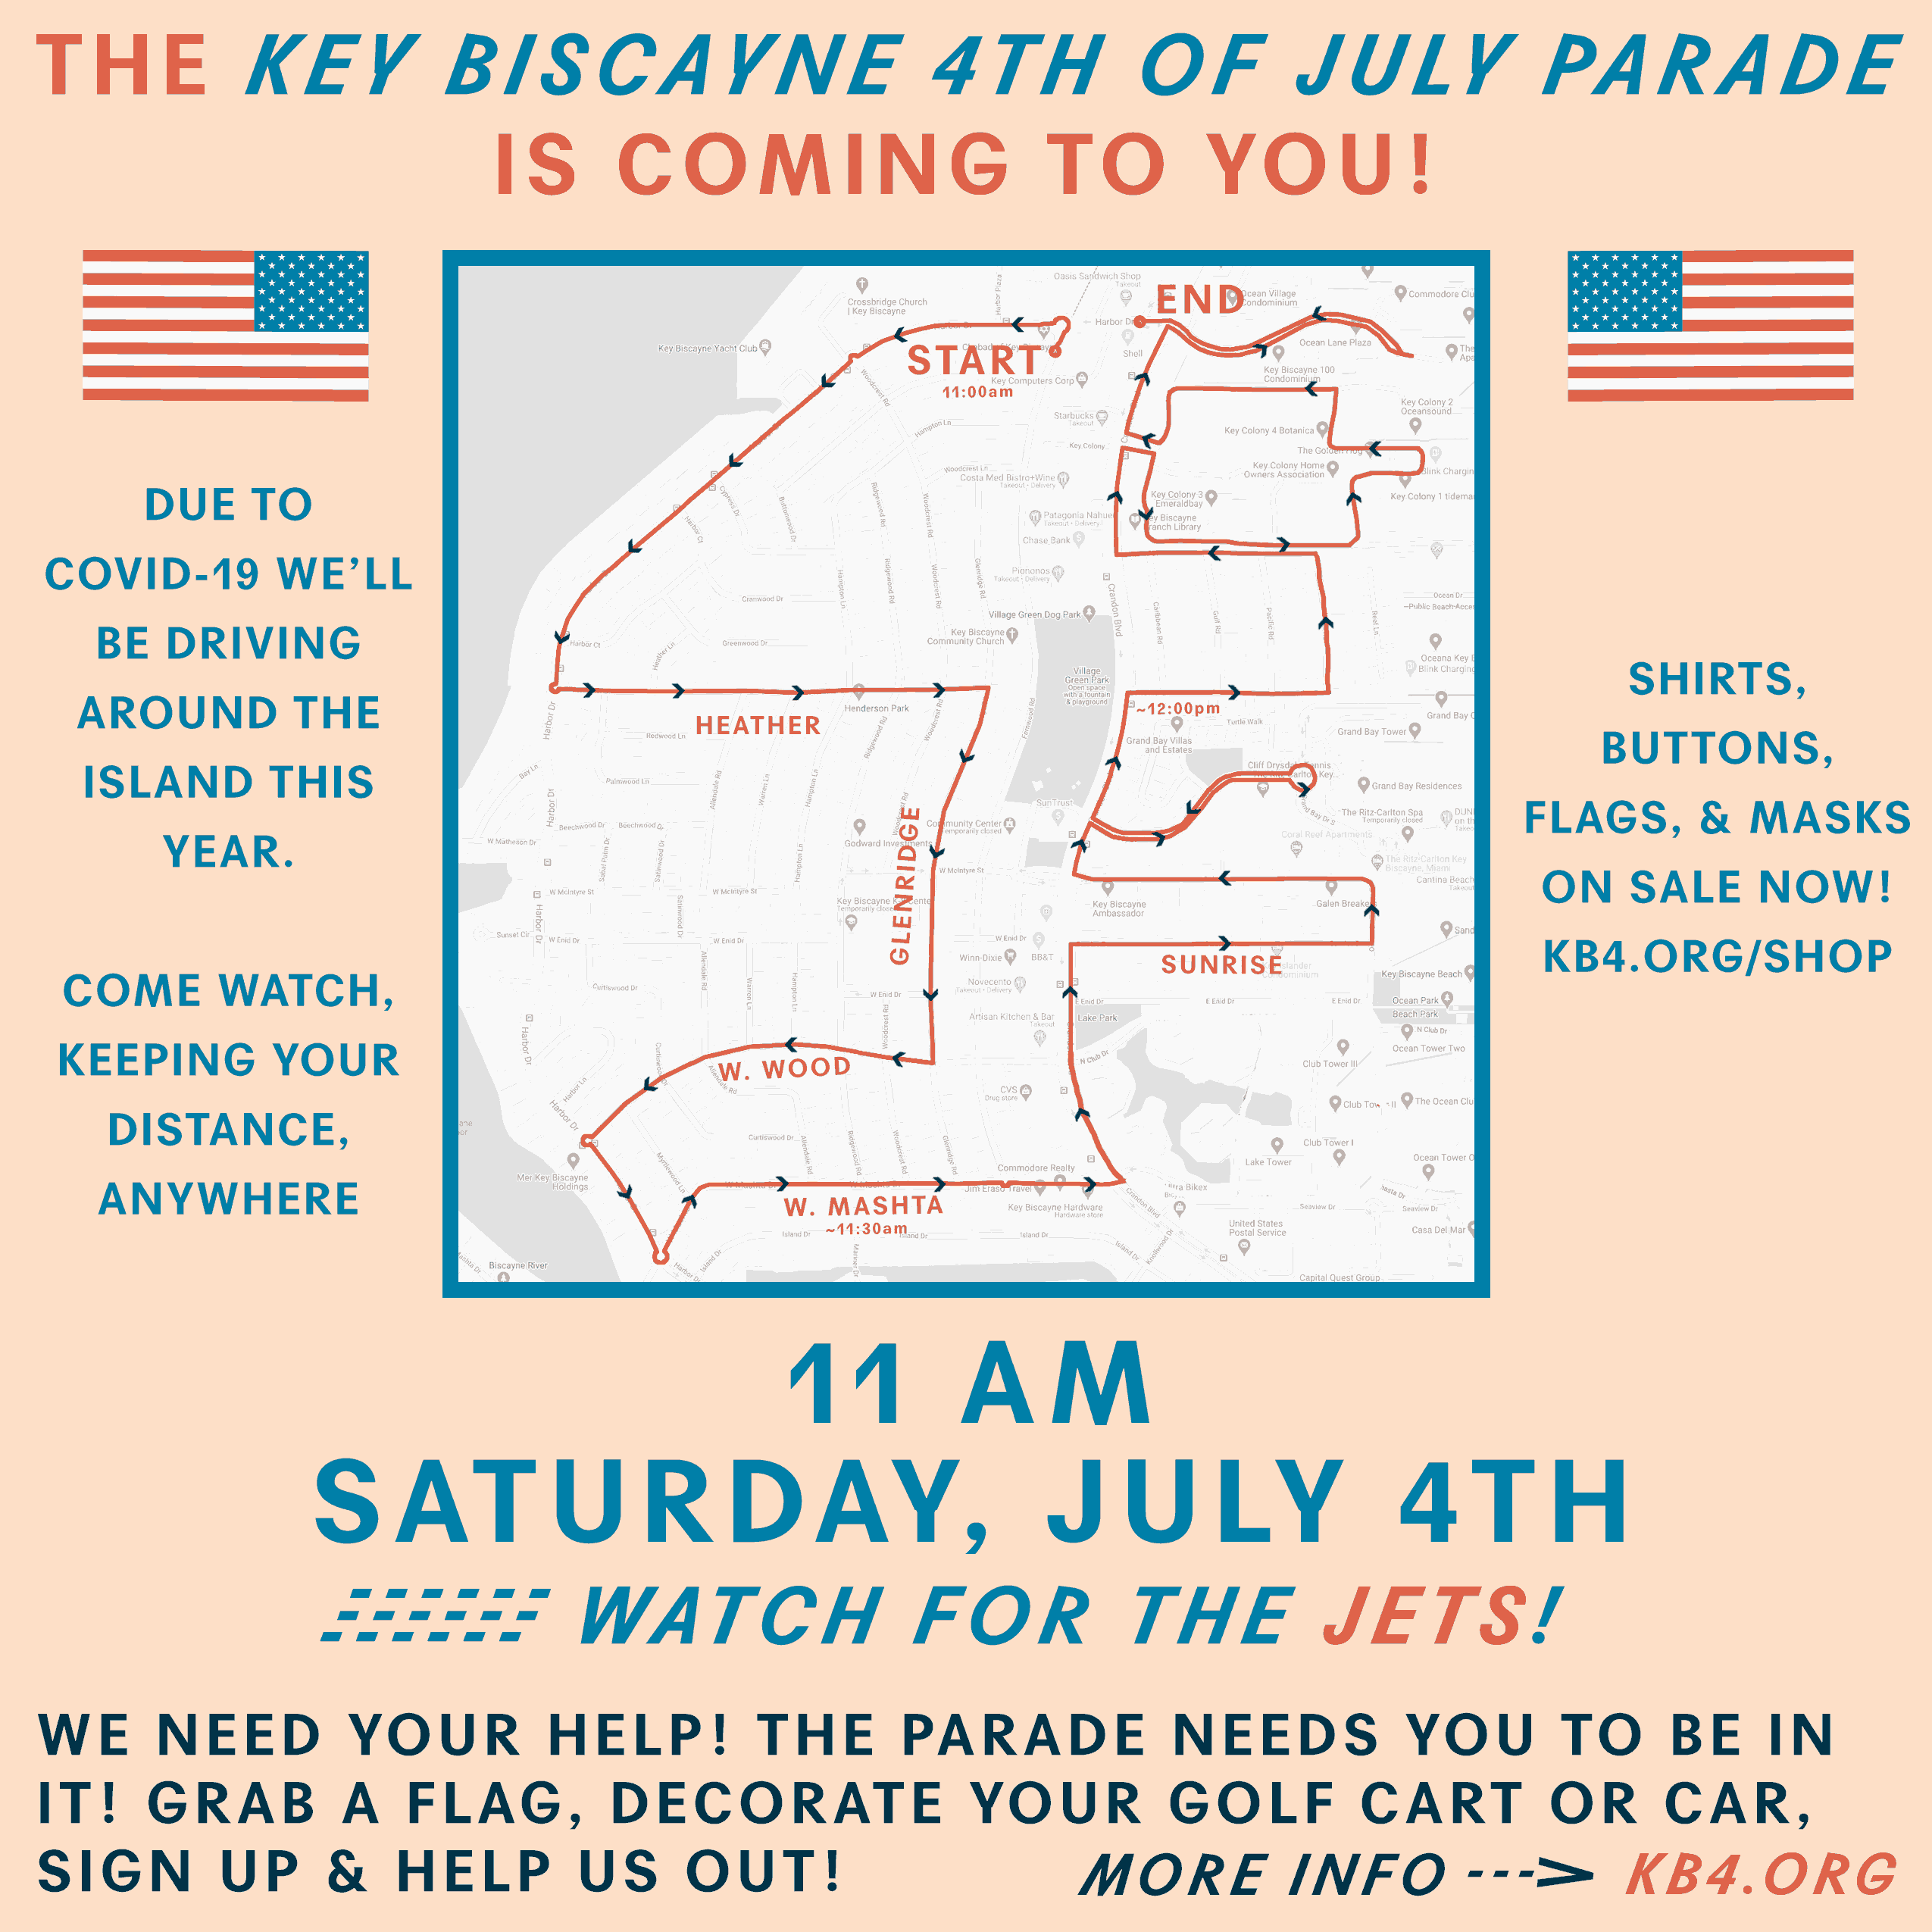 Key Biscayne 4th of July 2020 parade route